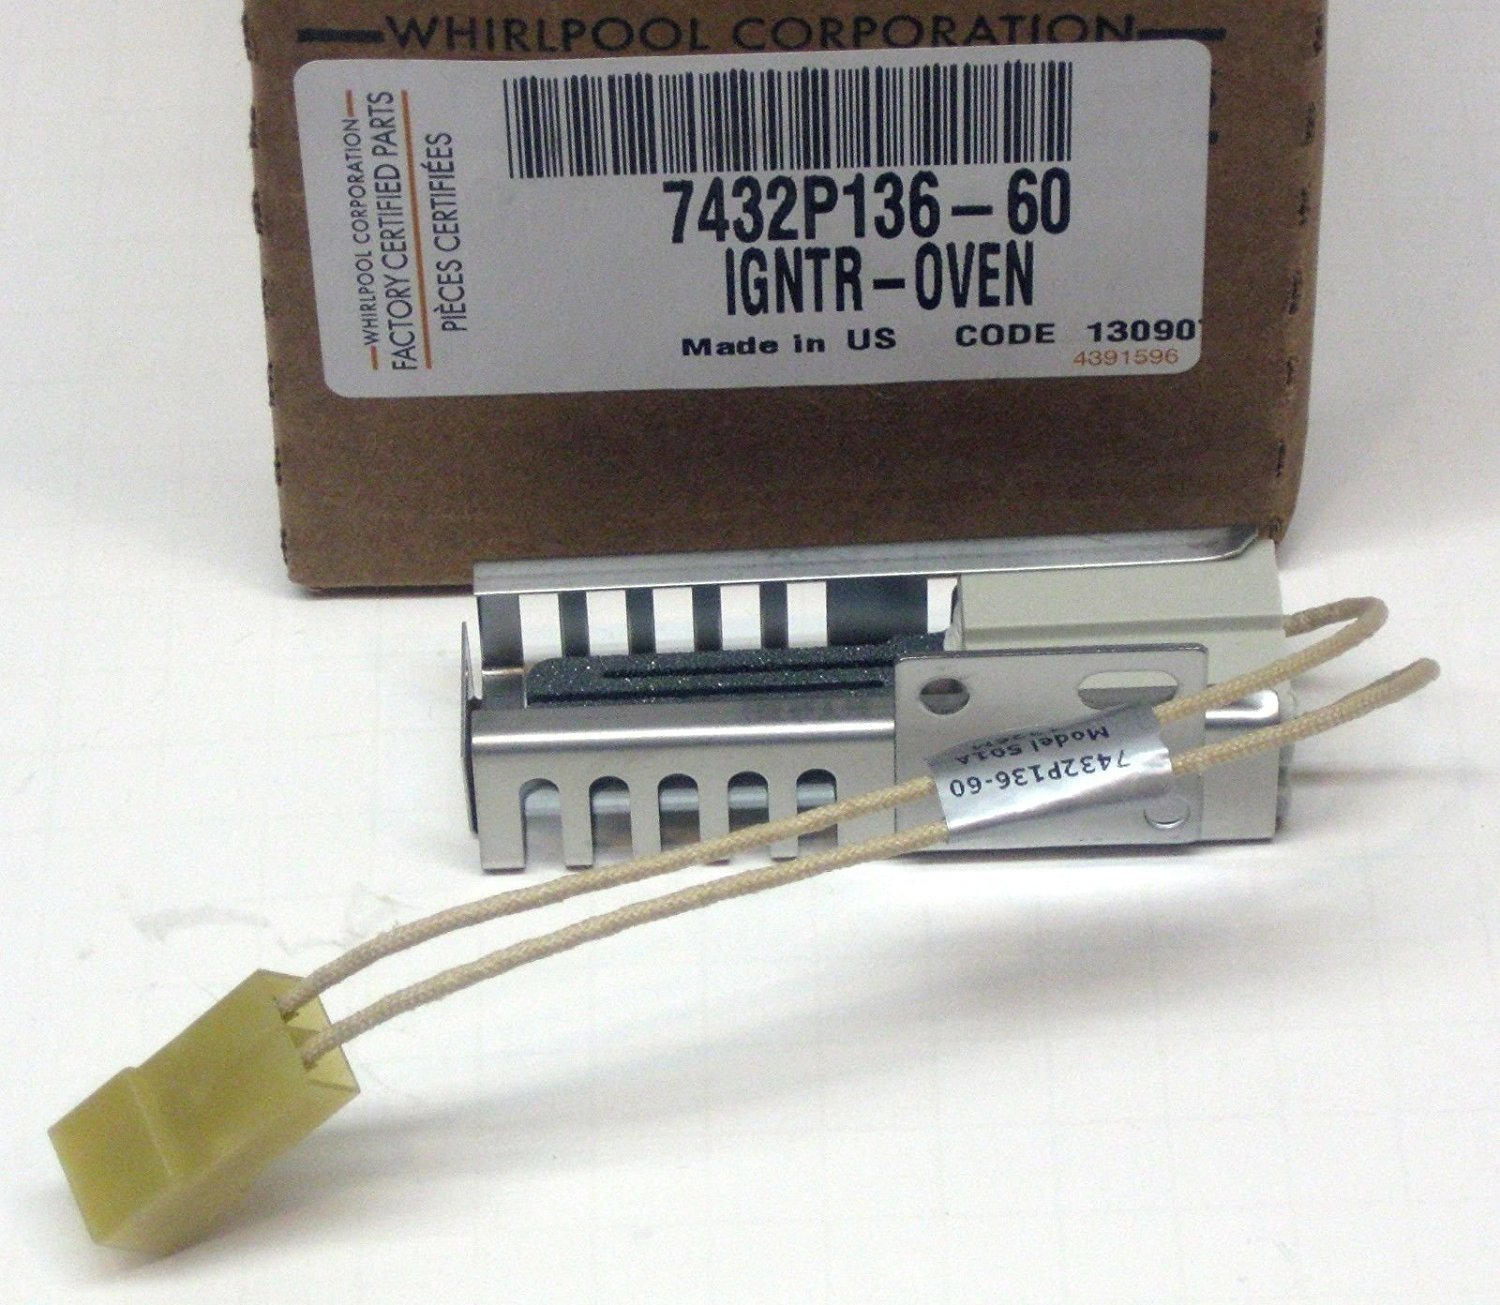 Whirlpool Part Number 7432P136-60: IGNITER (BAKE)